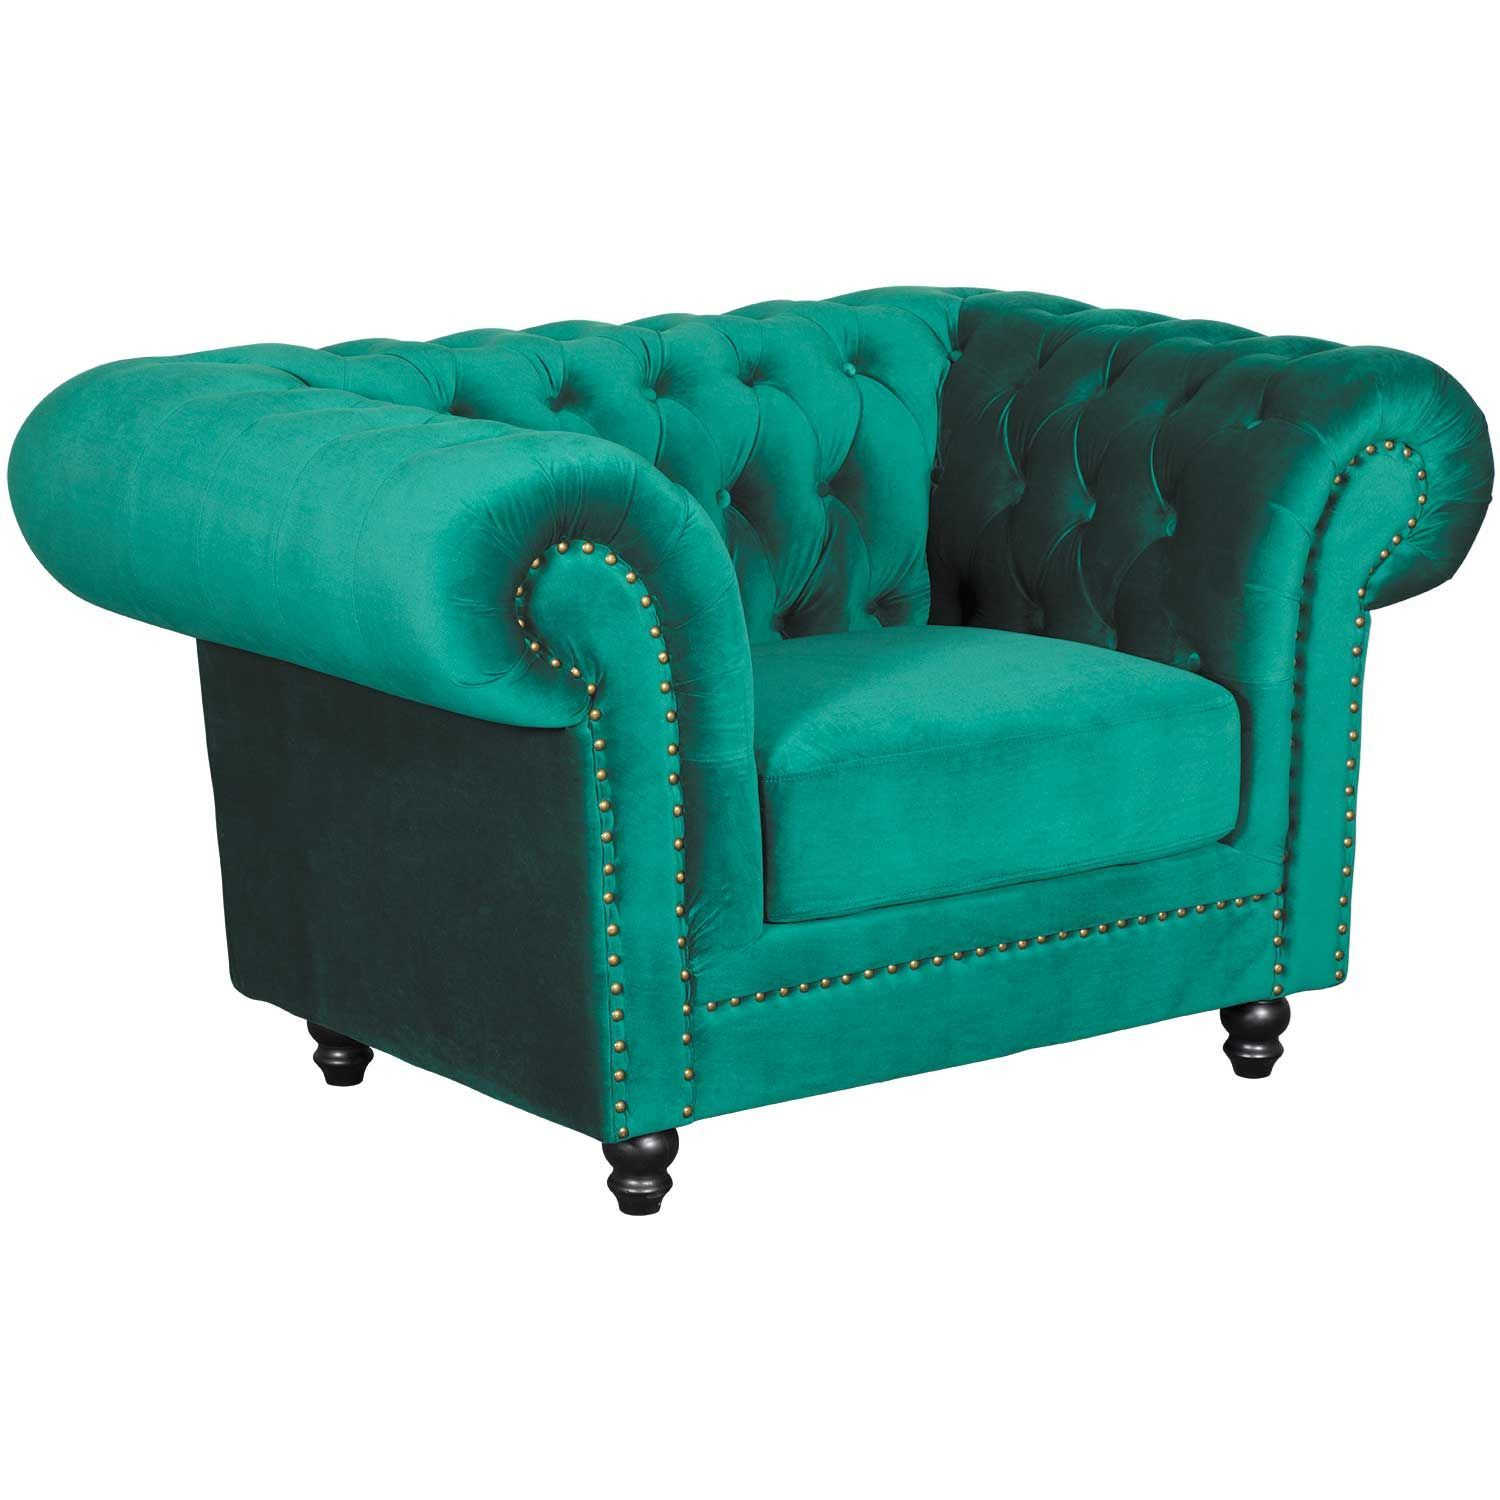 Callie Tufted Emerald Chair | My225 S1/cc 42 | Cambridge Home | Afw With Callie Sofa Chairs (View 18 of 20)